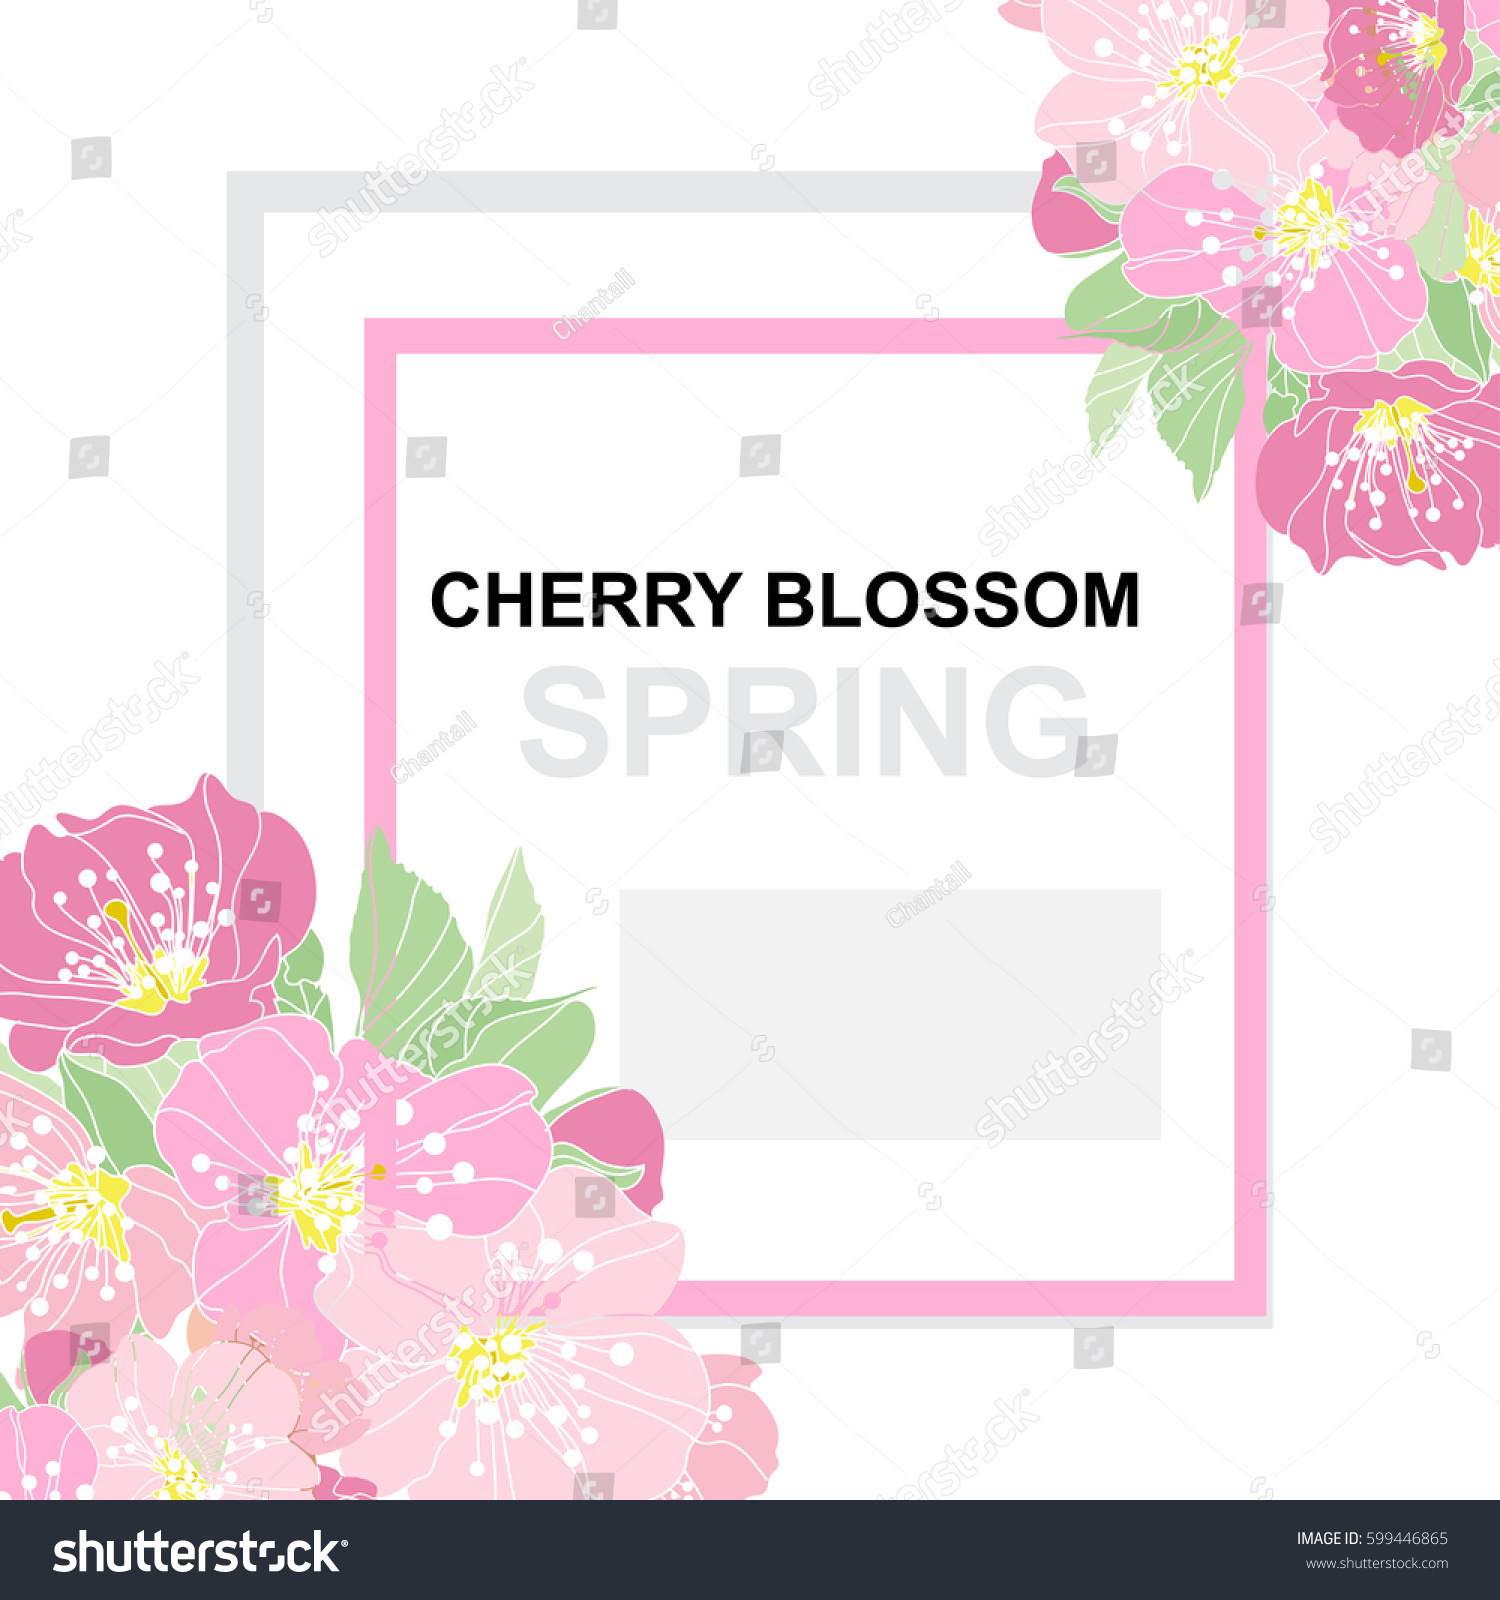 Elegant Card Decorative Cherry Blossom Flowers Stock Vector ...